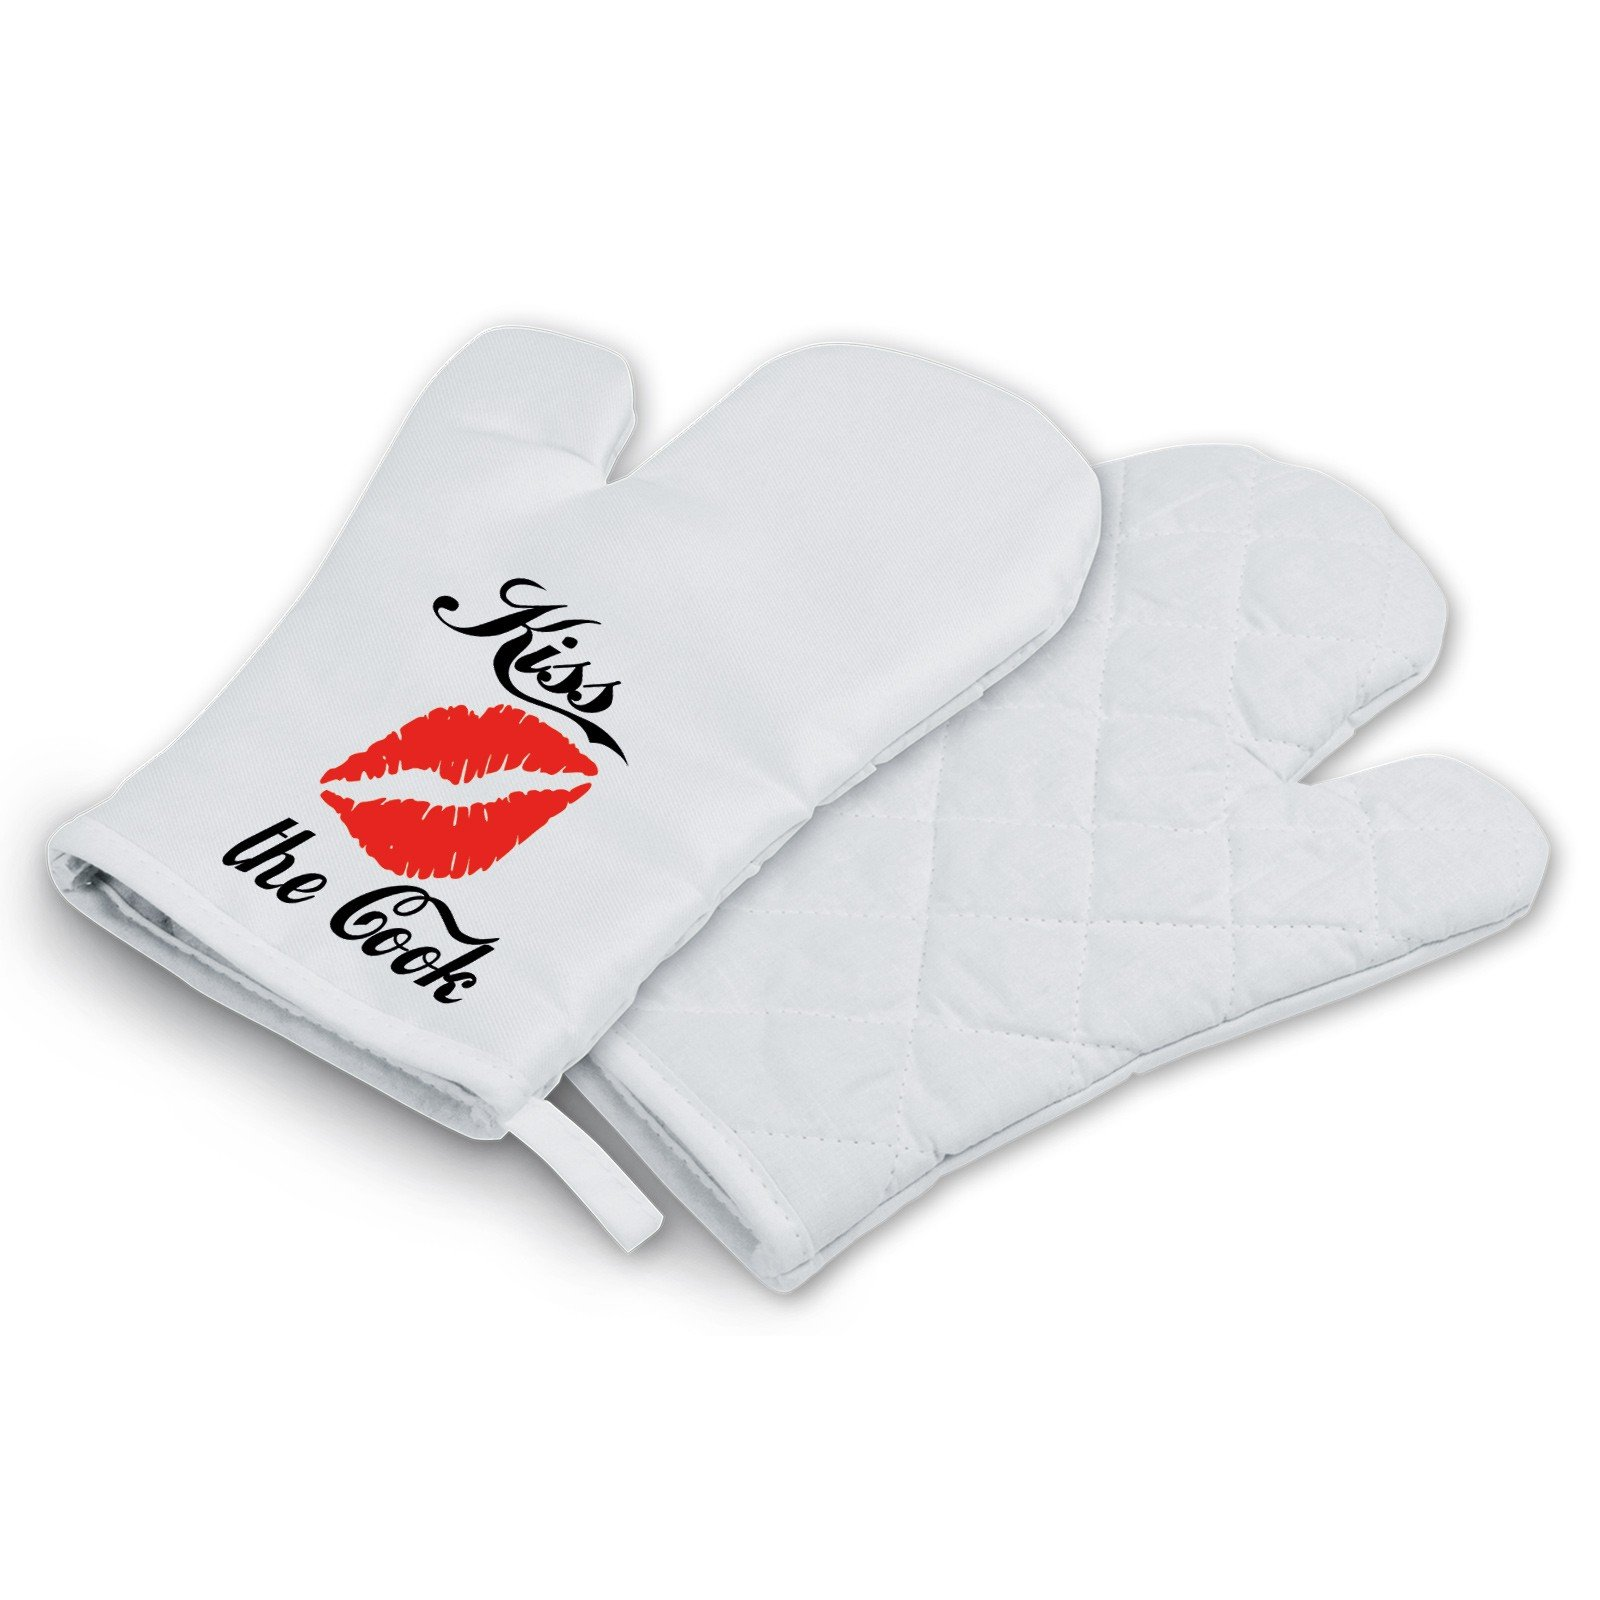 Grillhandschuh mit Motiv - Modell: Kiss the Cook